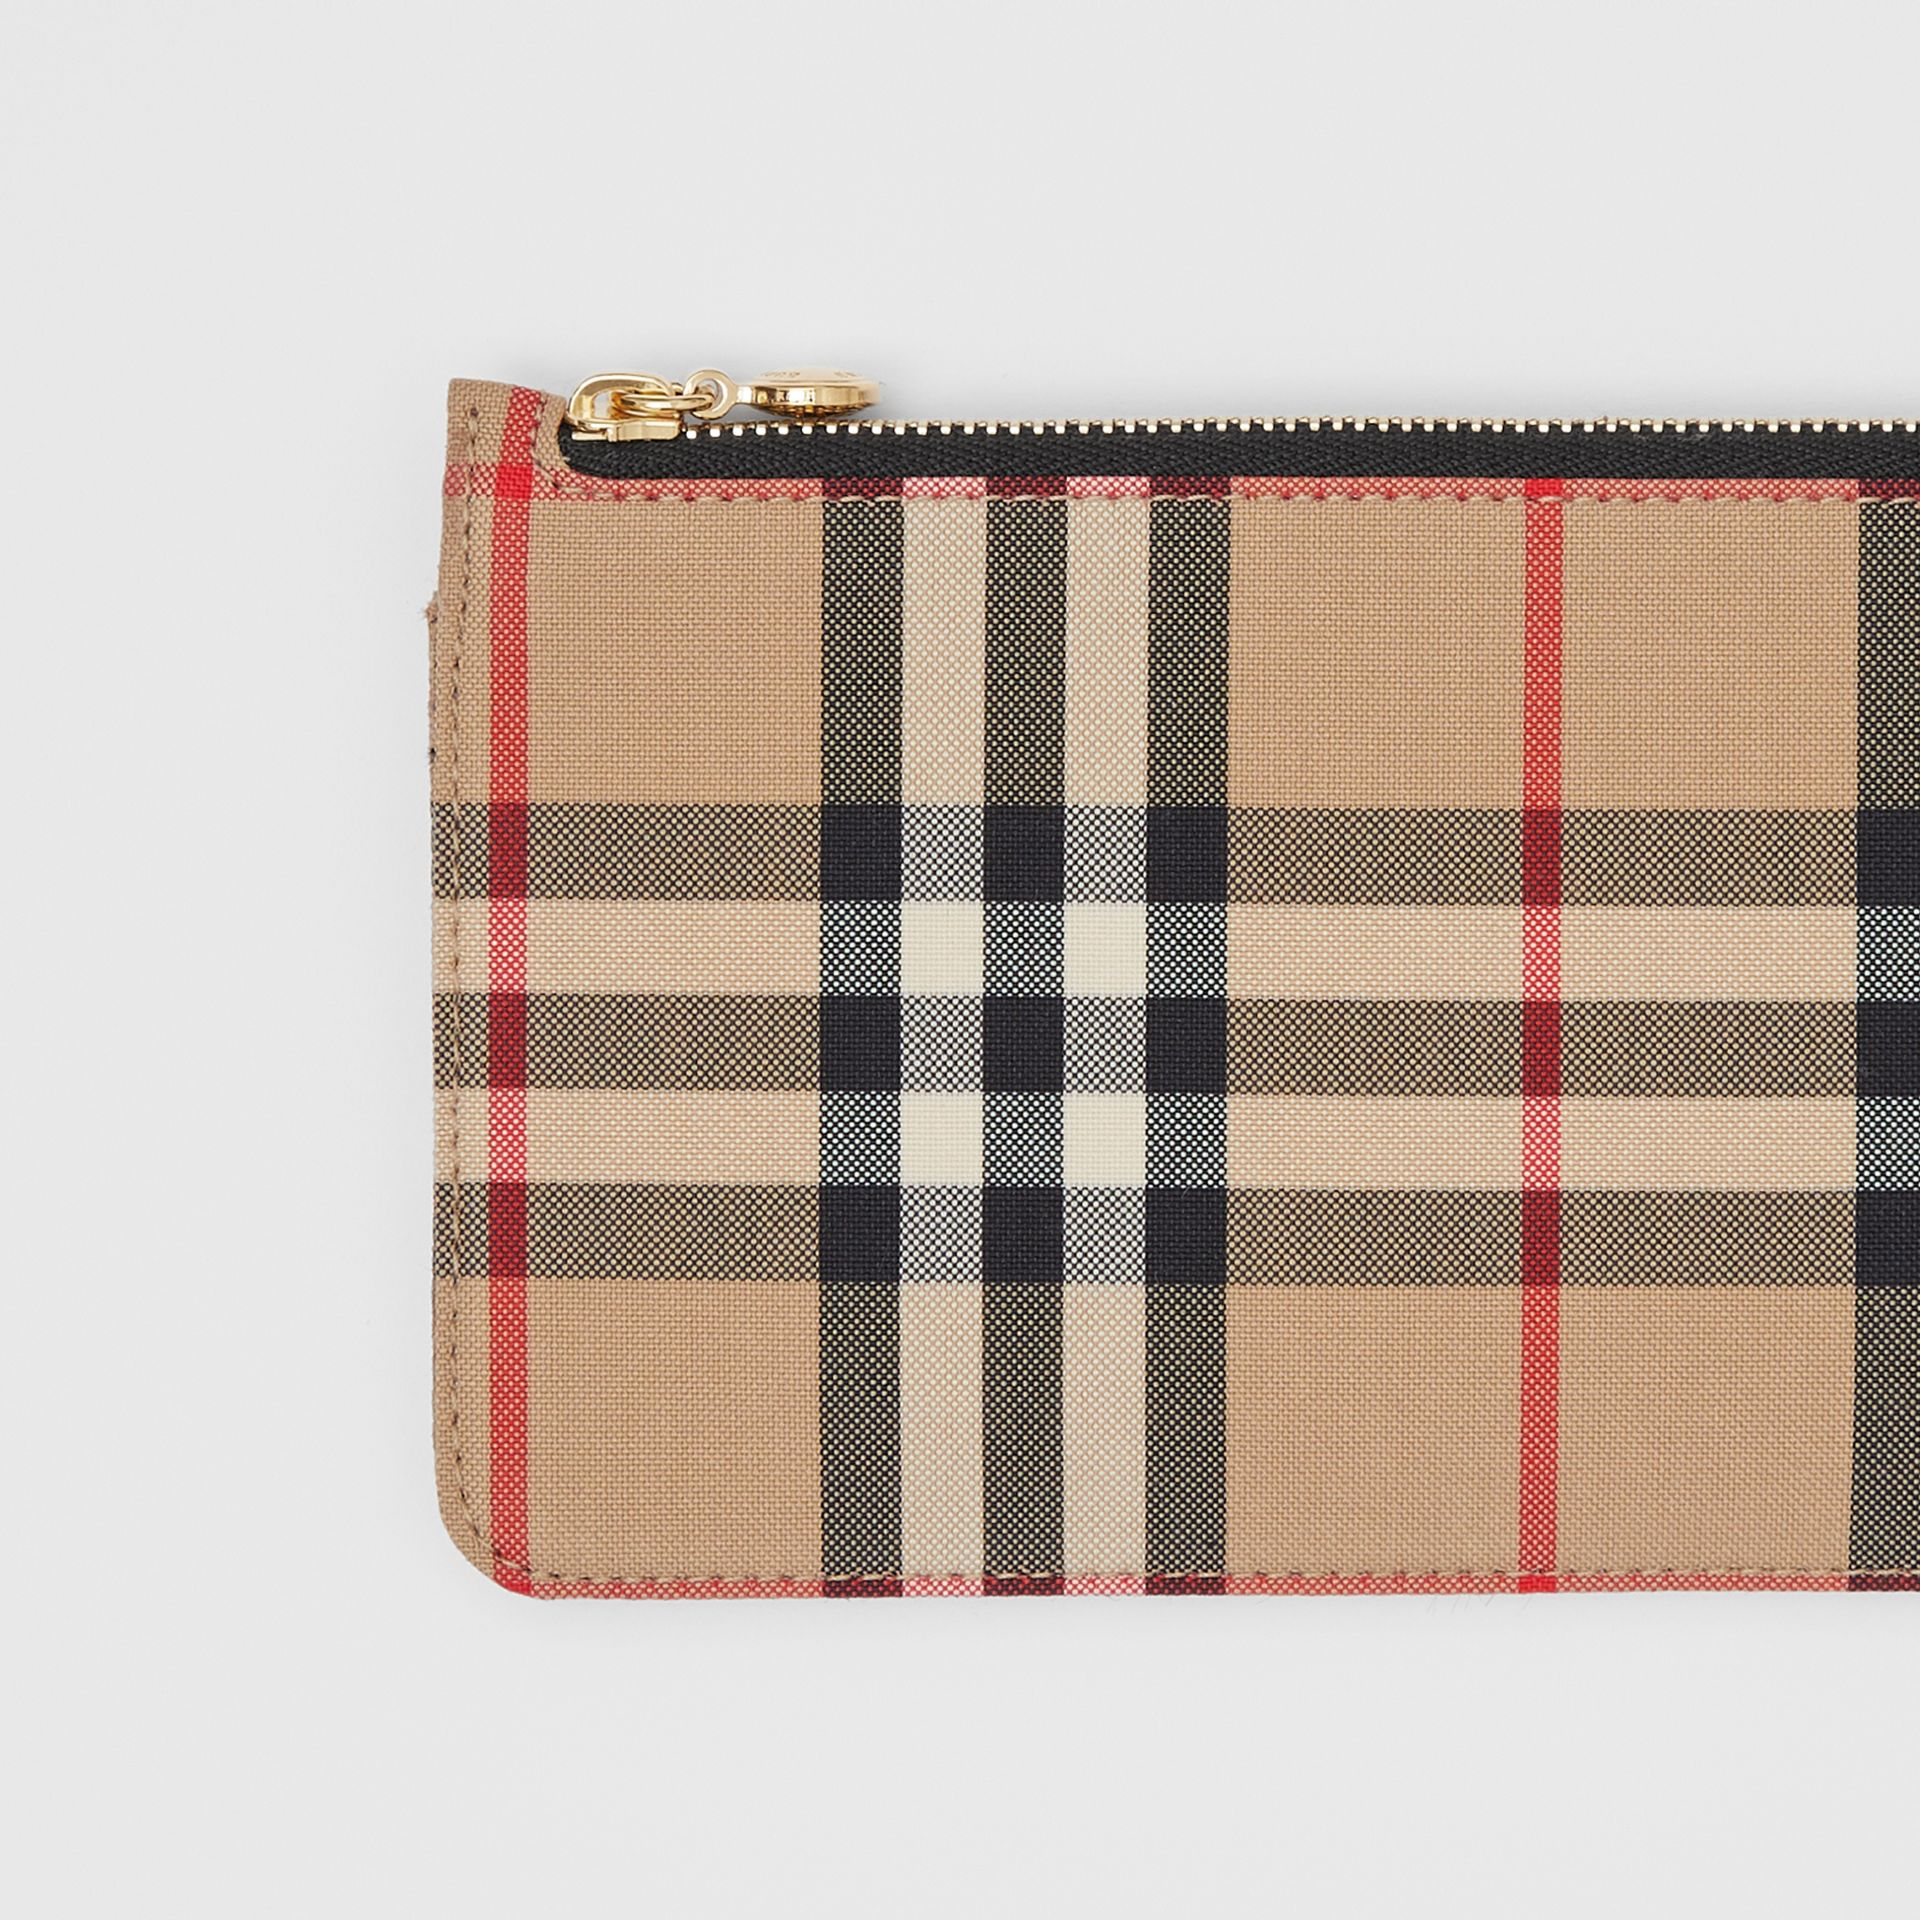 Vintage Check and Leather Phone Wallet in Black - Women | Burberry Hong Kong S.A.R - gallery image 1